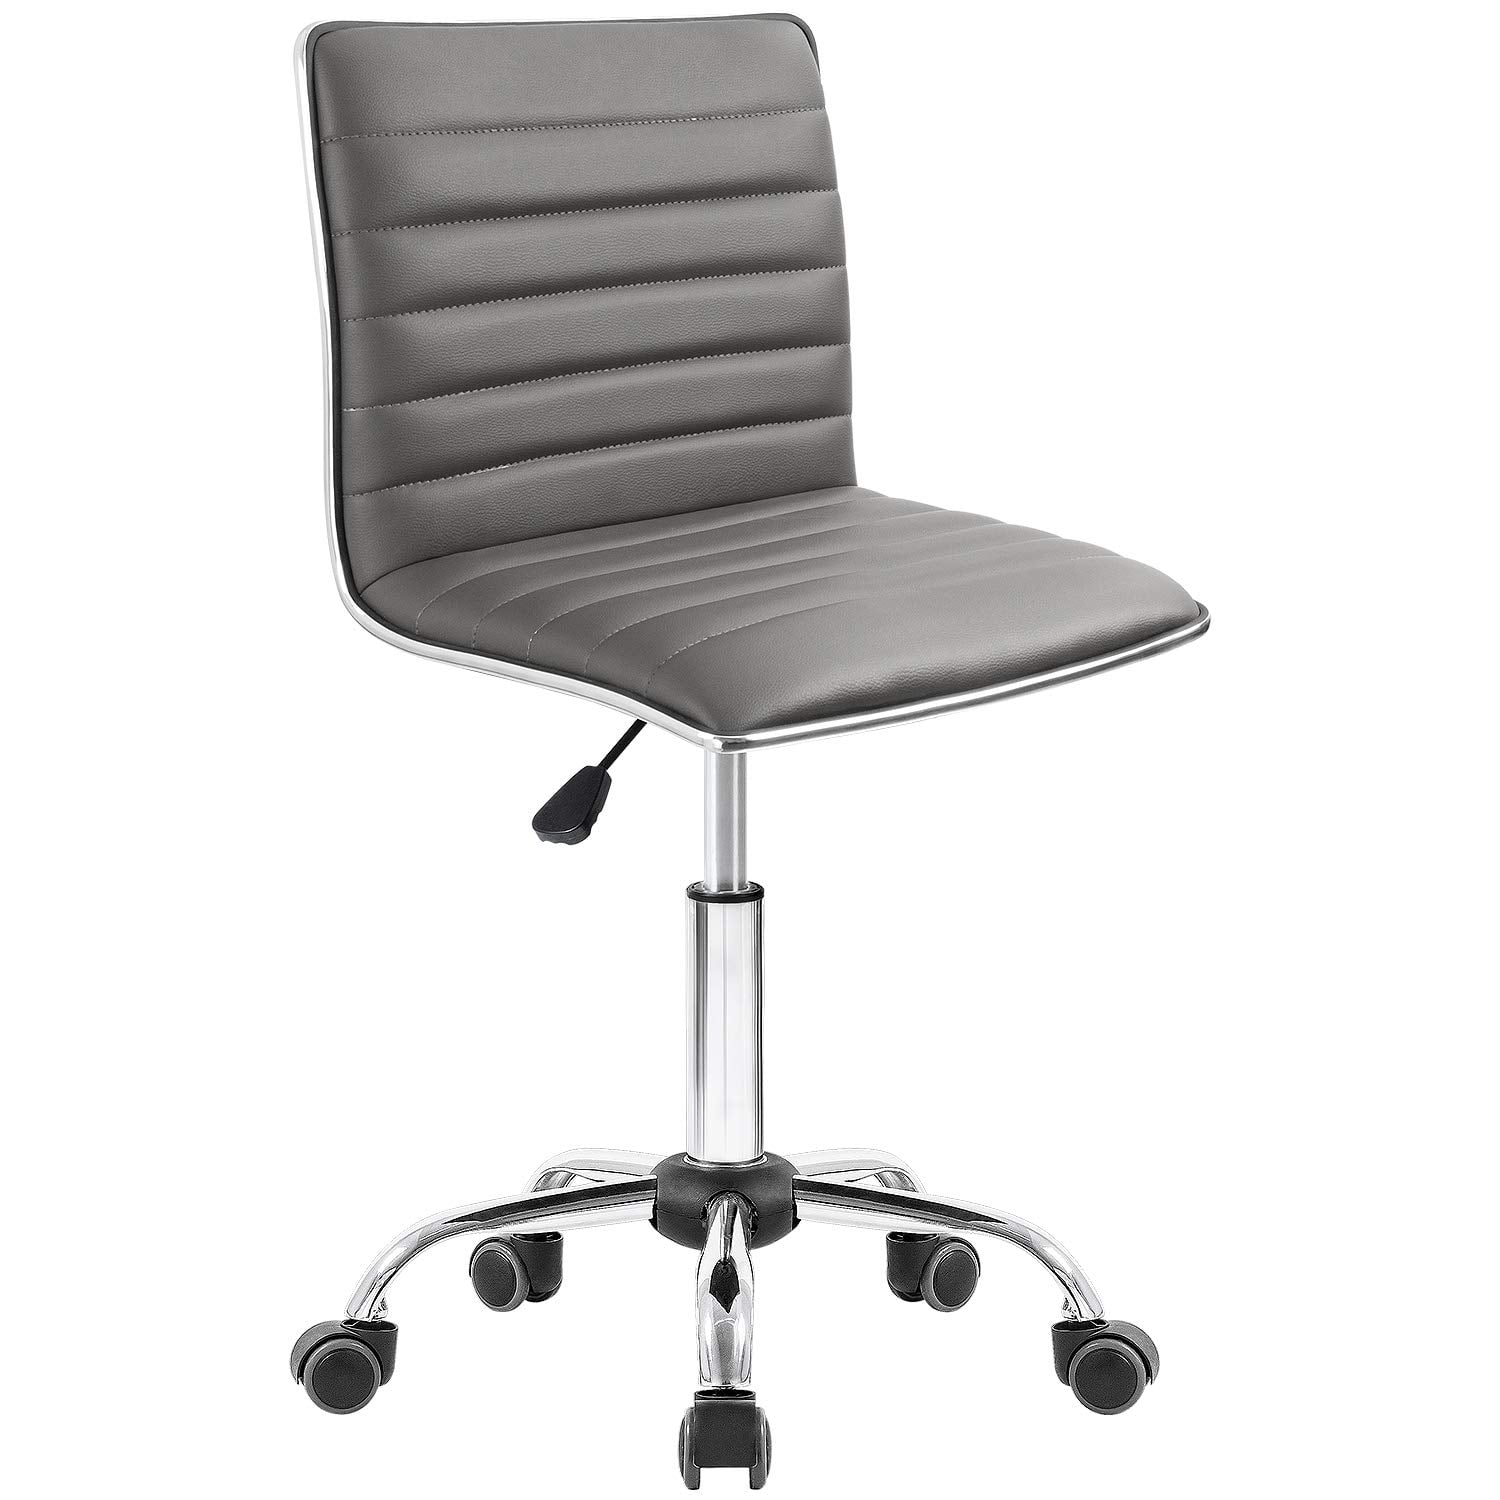 Walnew Task Chair Desk Chair Mid Back Armless Vanity Chair Swivel Office Rolling Leather Computer Chairs Ribbed Adjustable Conference Chair Gray Brickseek